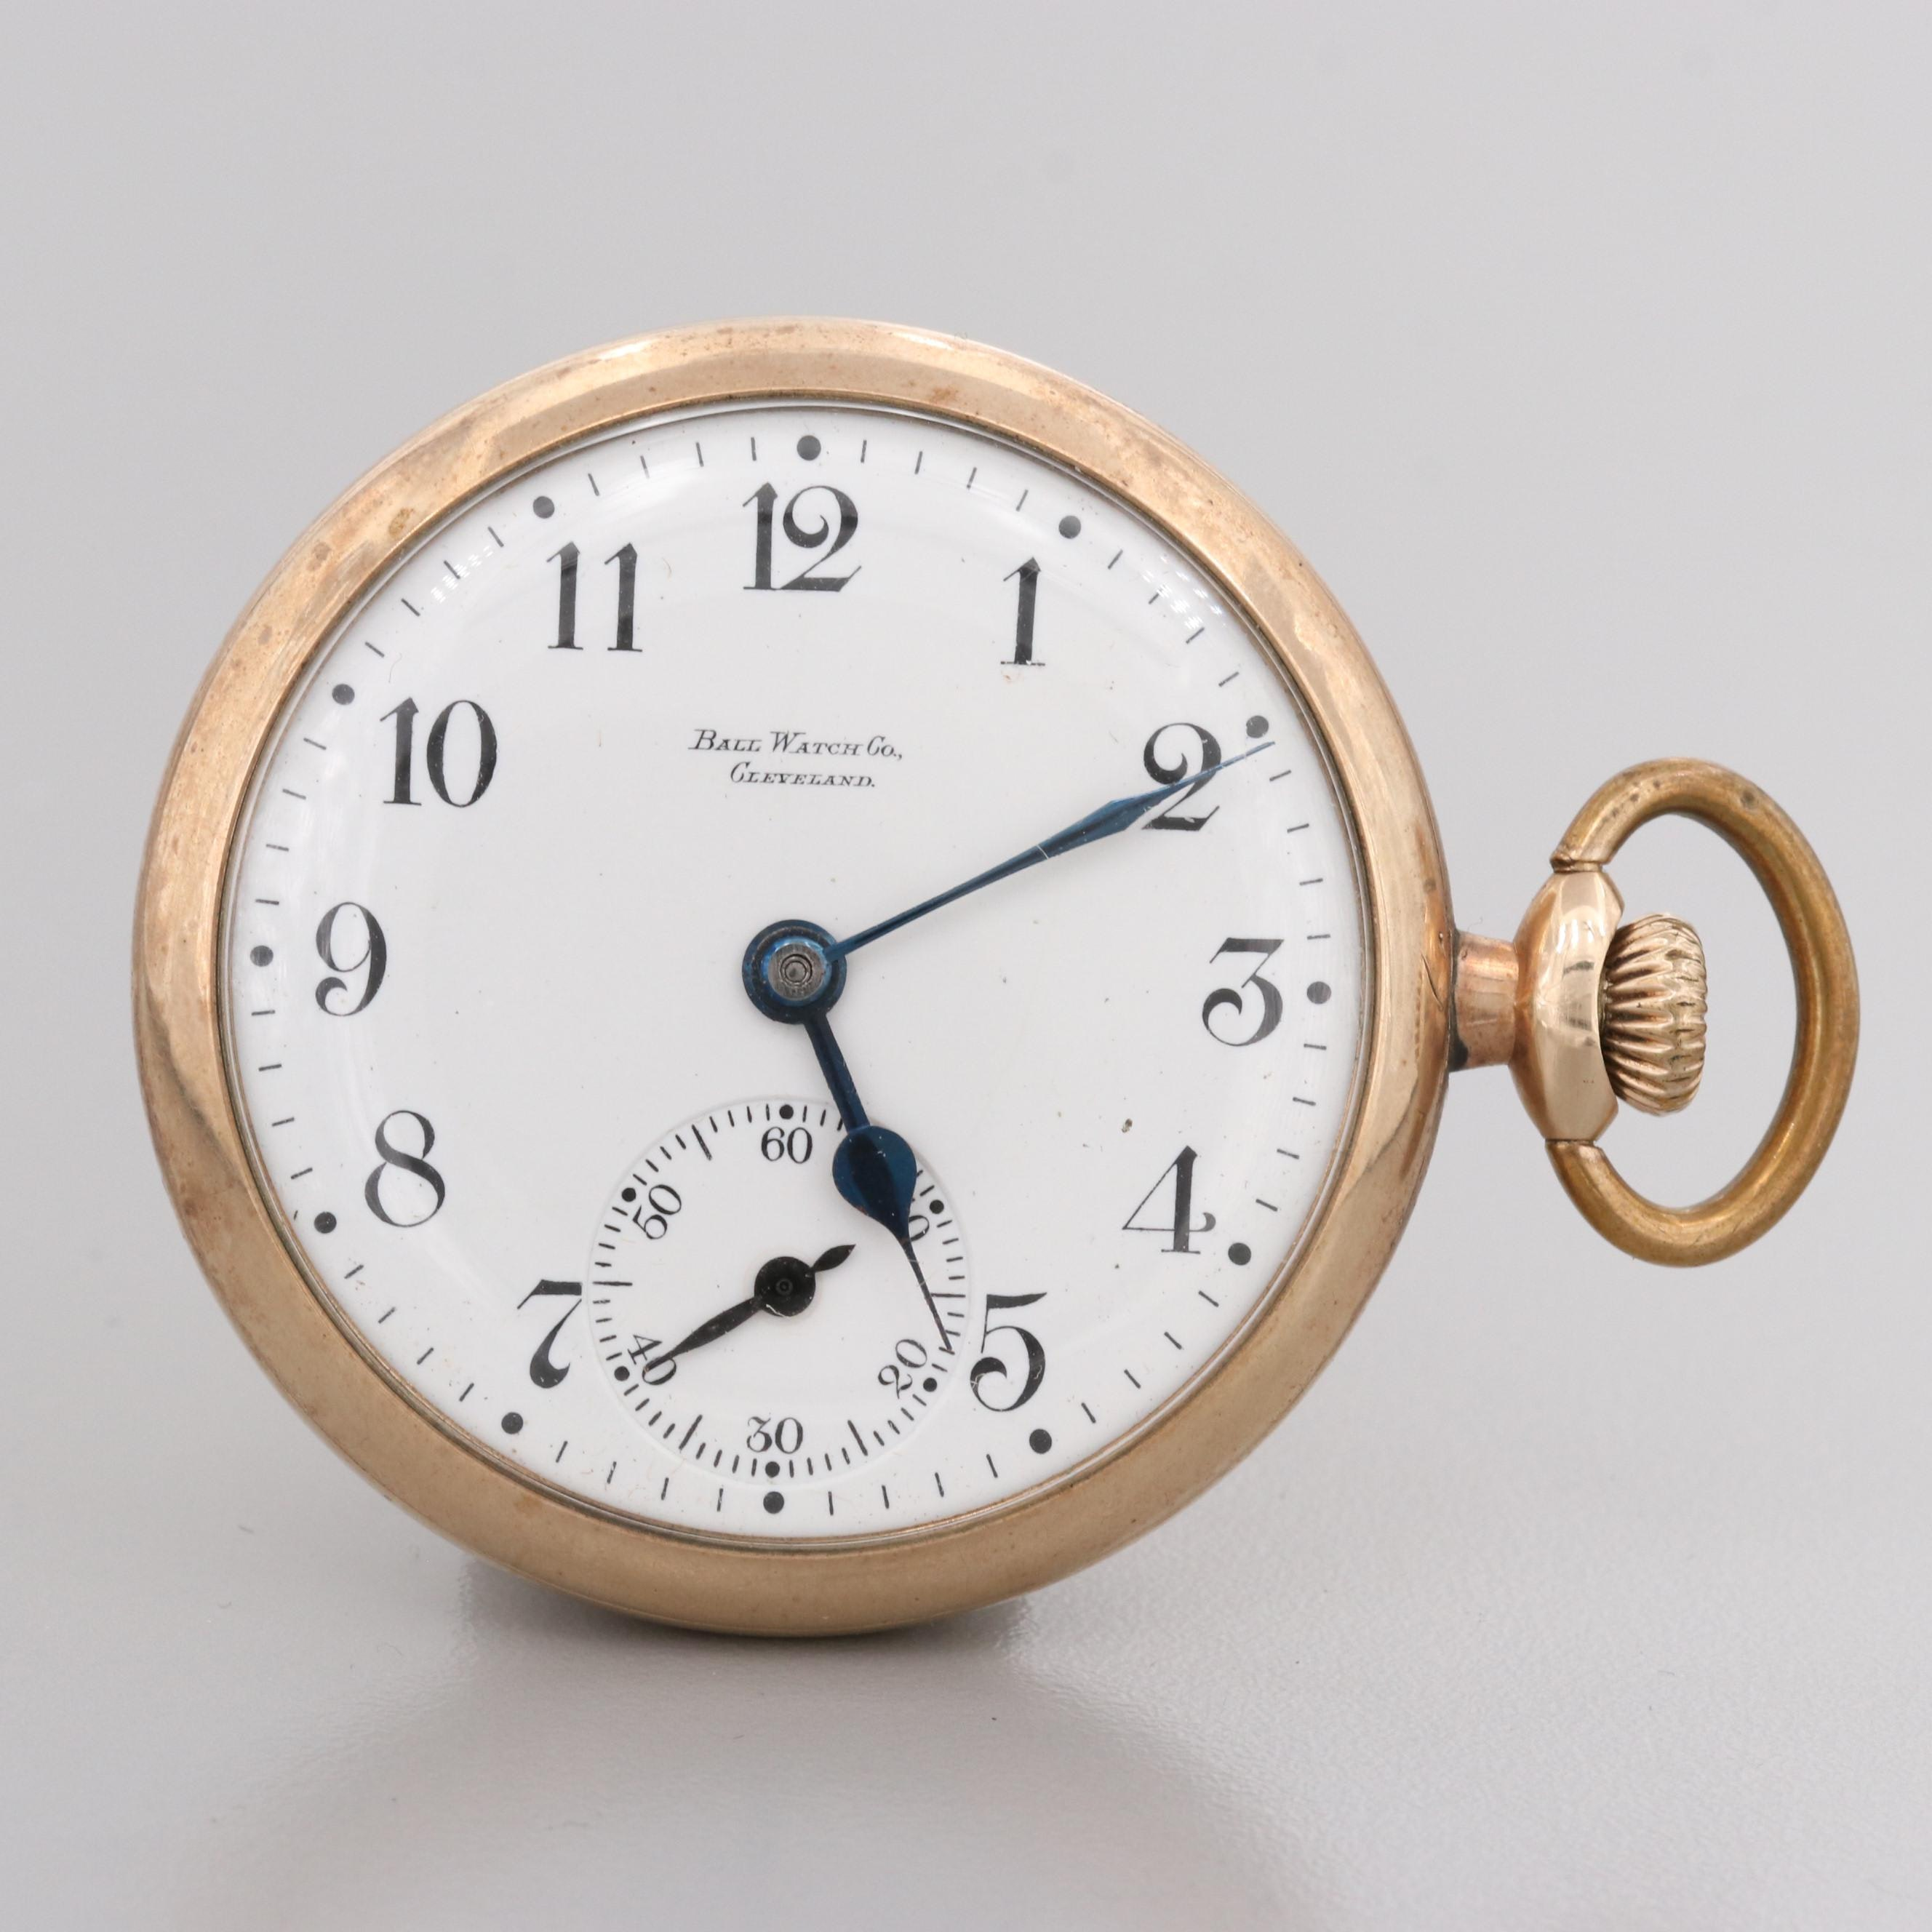 Ball Watch Co. Sidewinder Pocket Watch